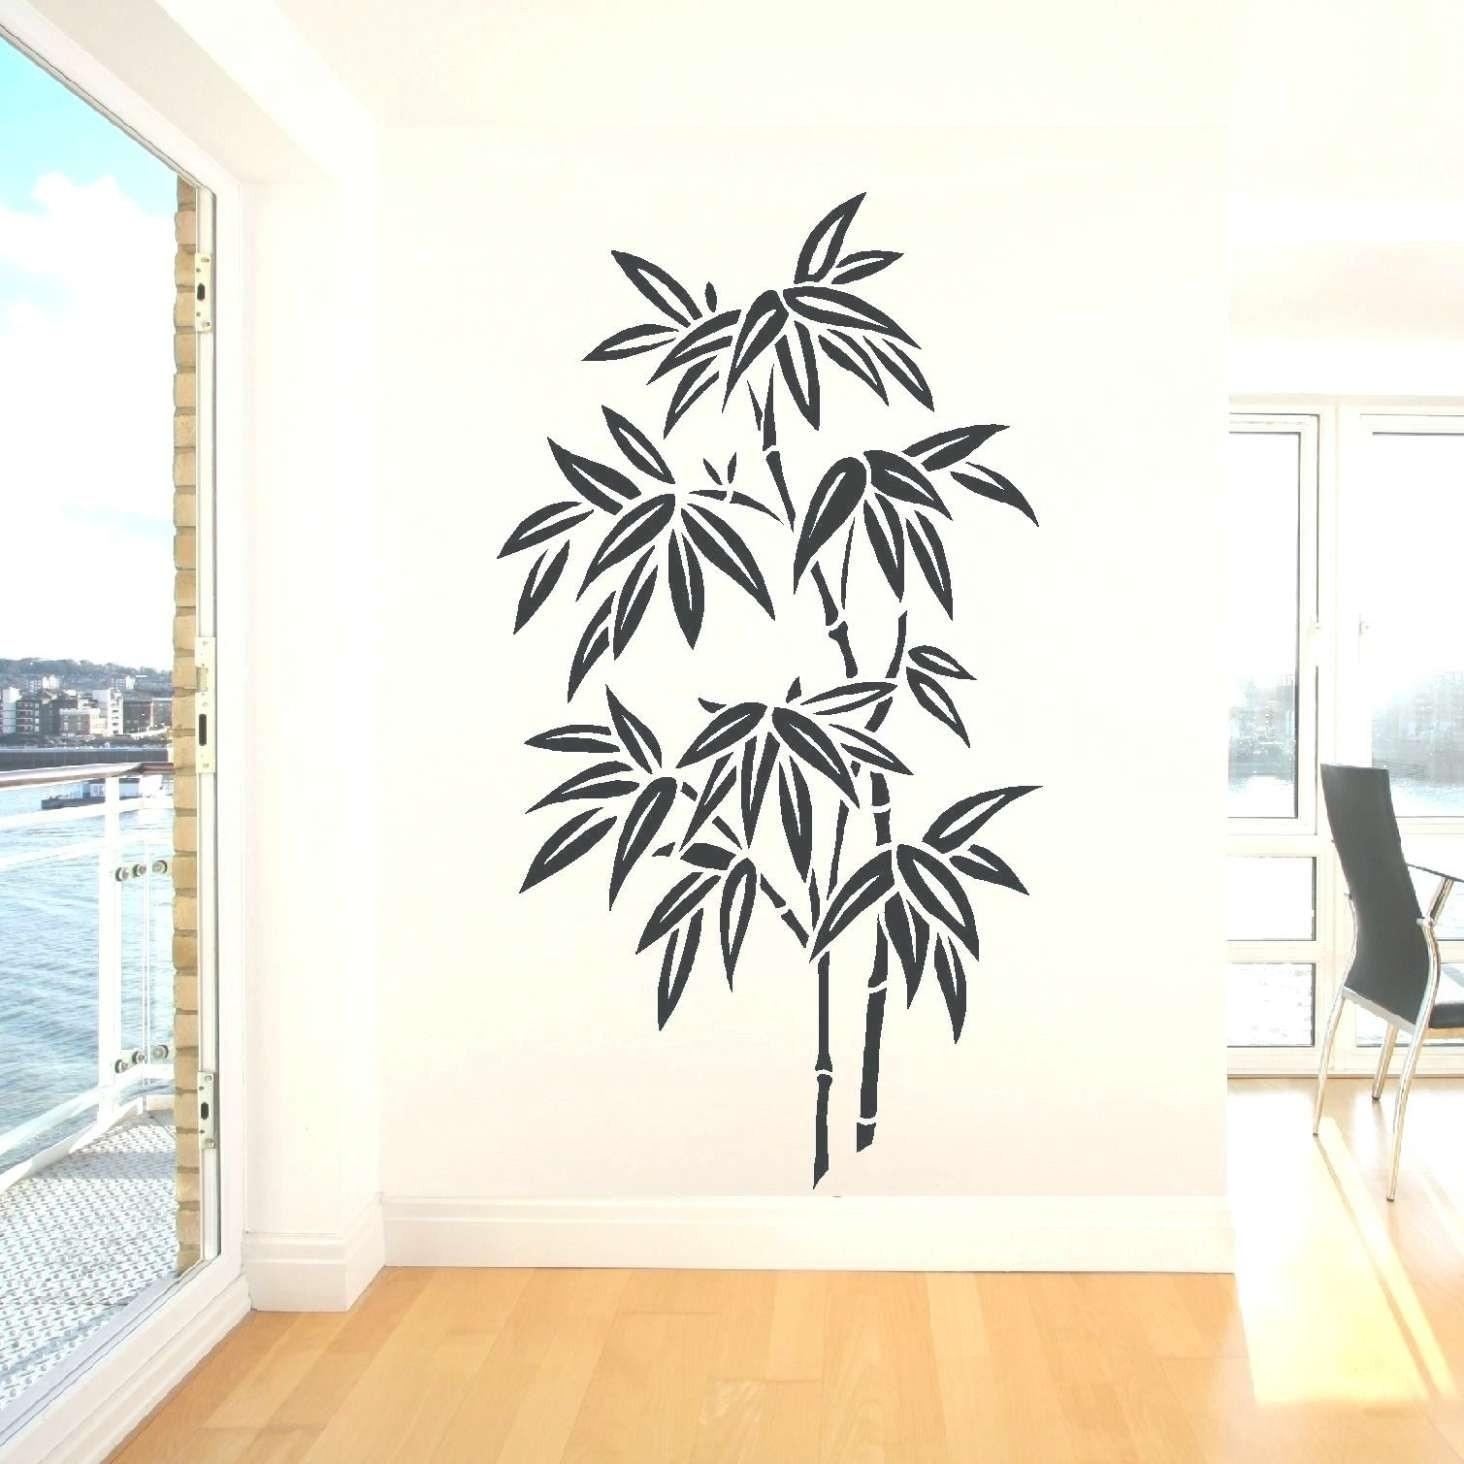 Tree Wall Decal Hobby Lobby Beautiful Awesome Palm Tree Wall Art with Palm Tree Wall Art (Image 18 of 20)